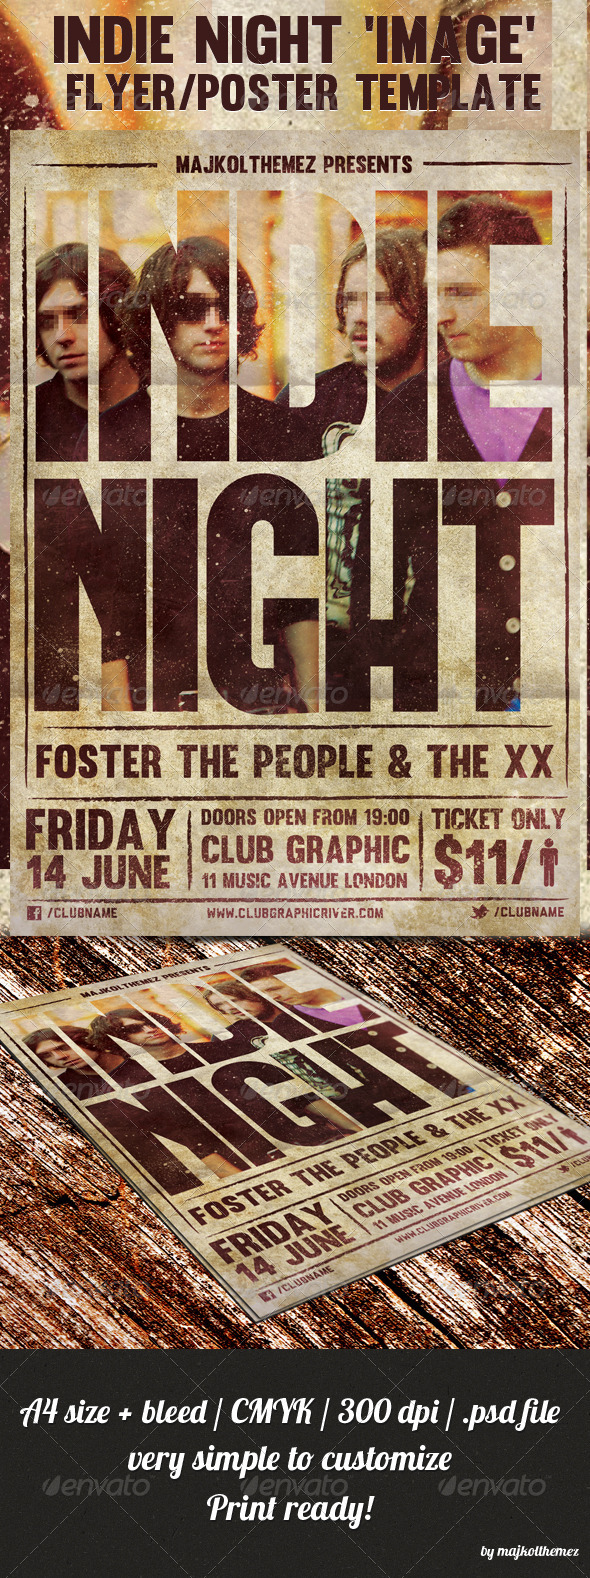 Indie Night Image Flyer/Poster Template - Concerts Events